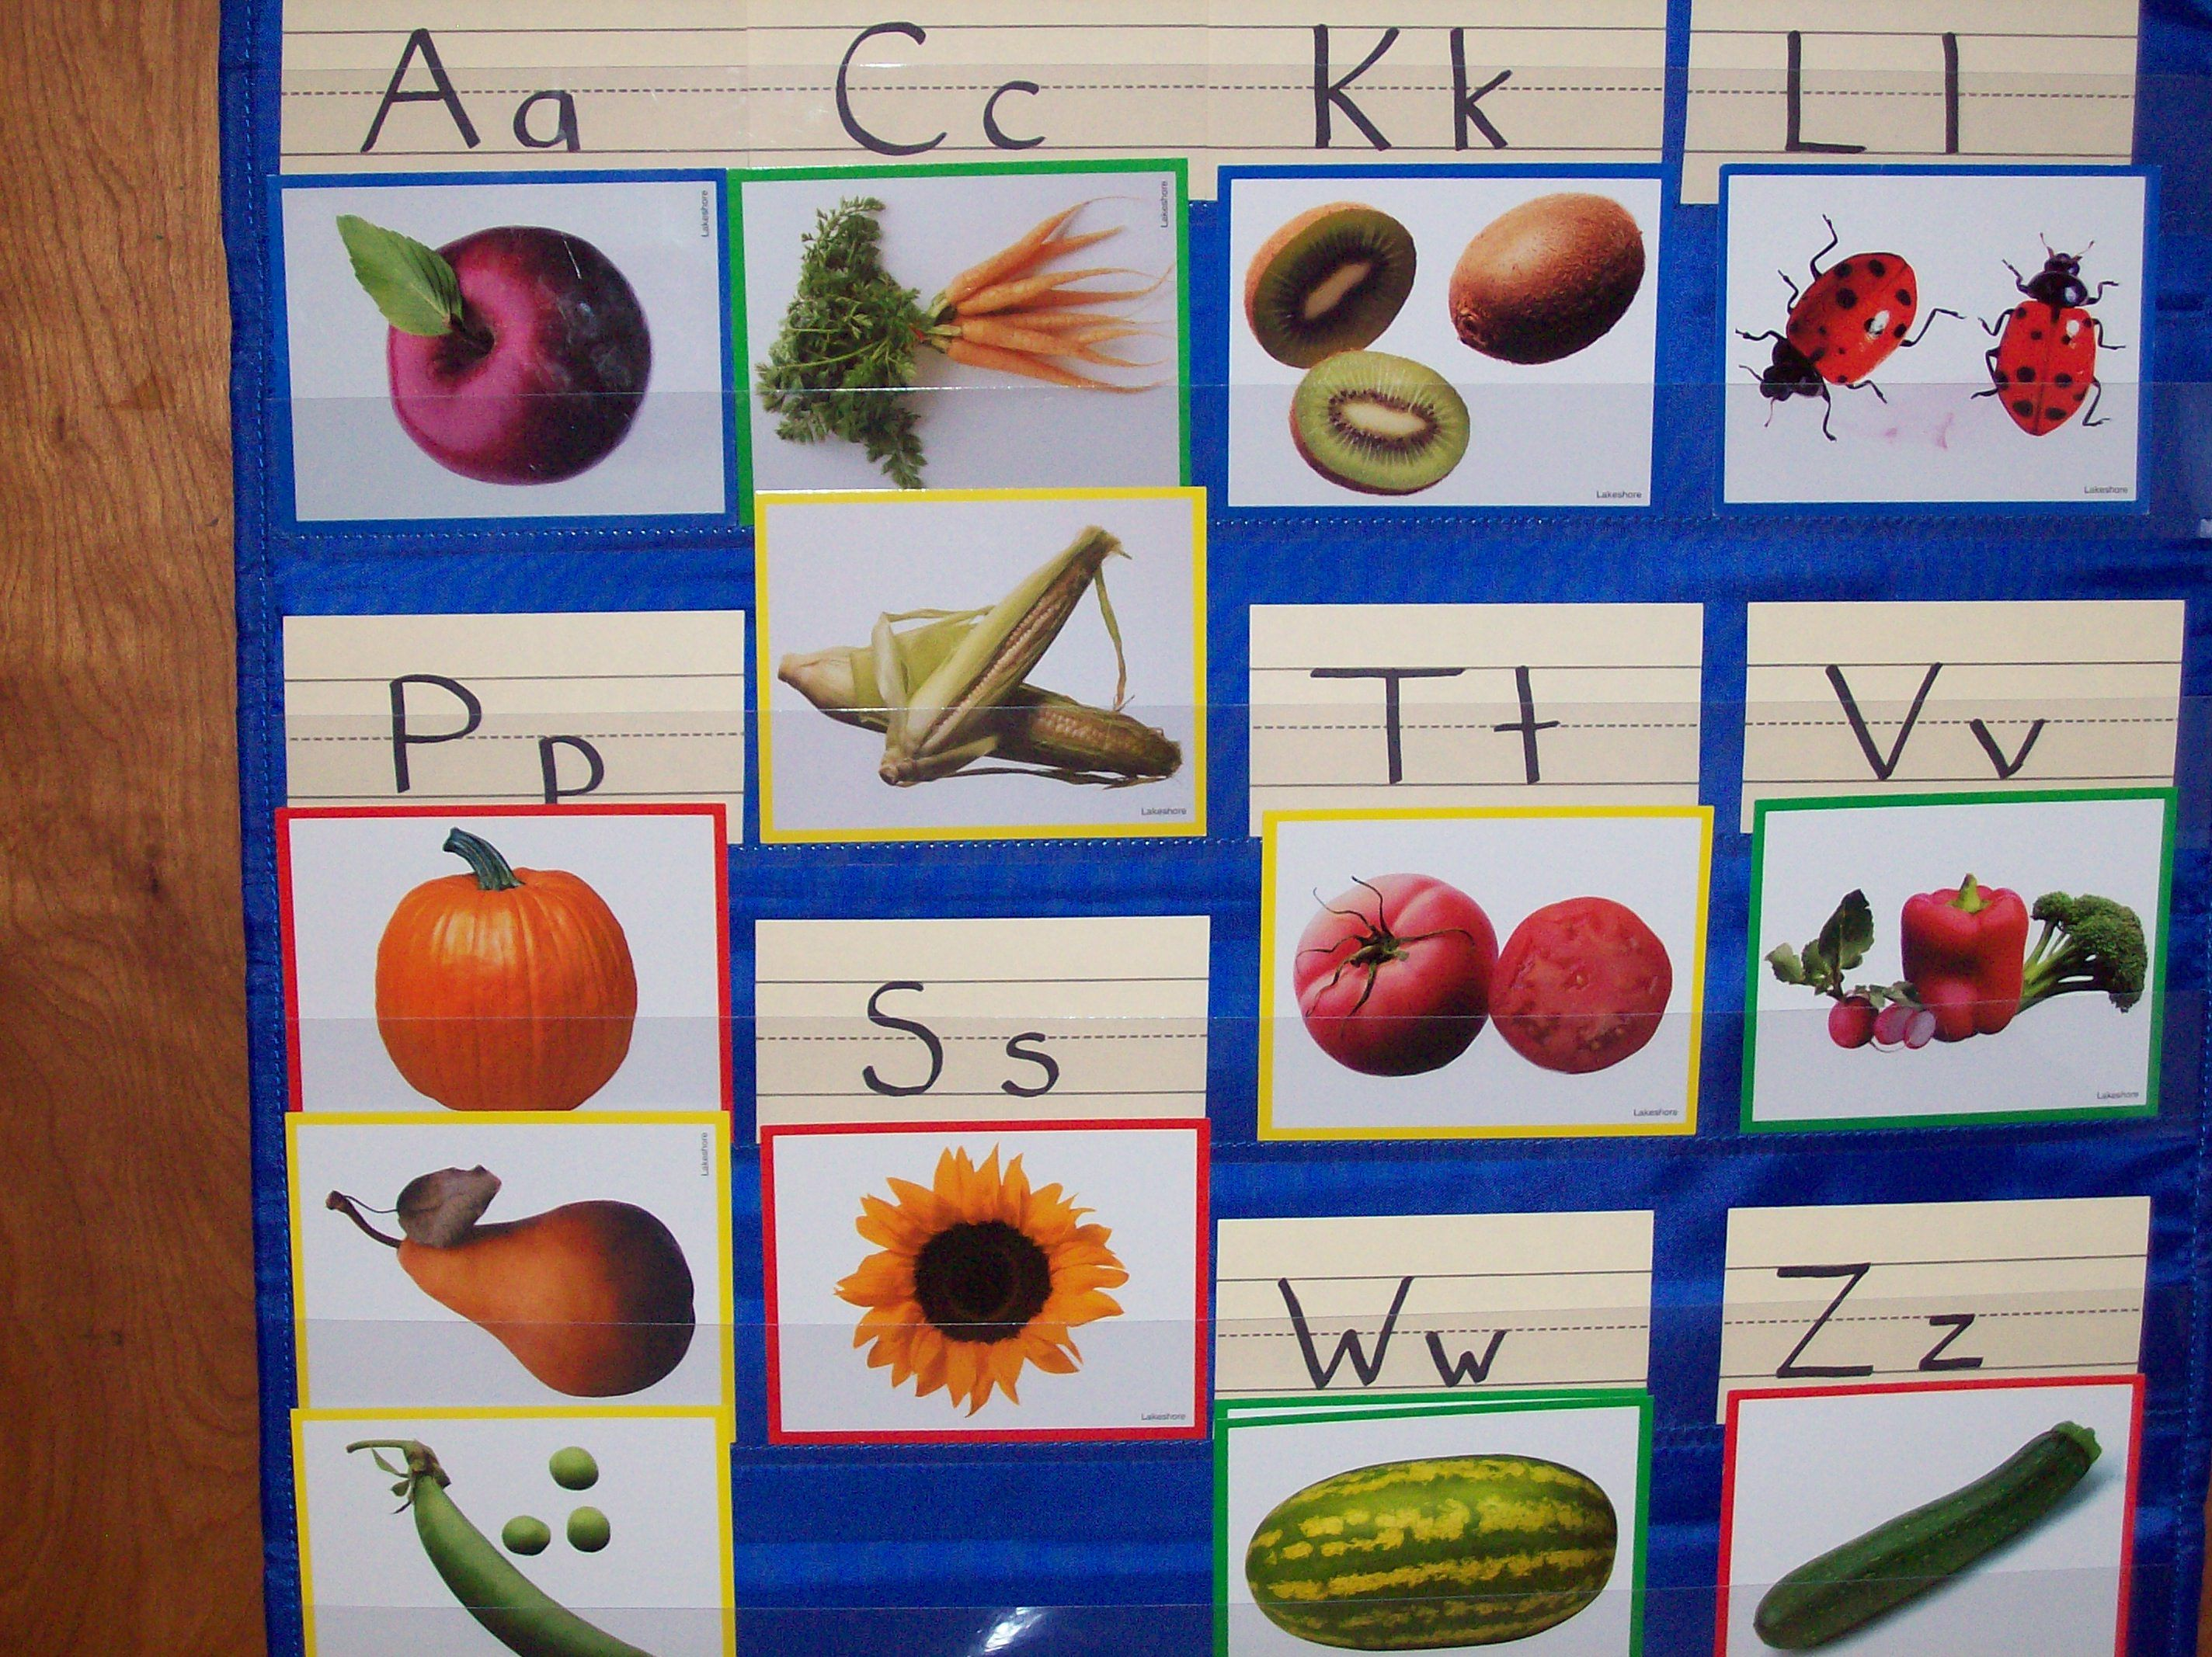 Letter Sound Identification With The Pocket Chart